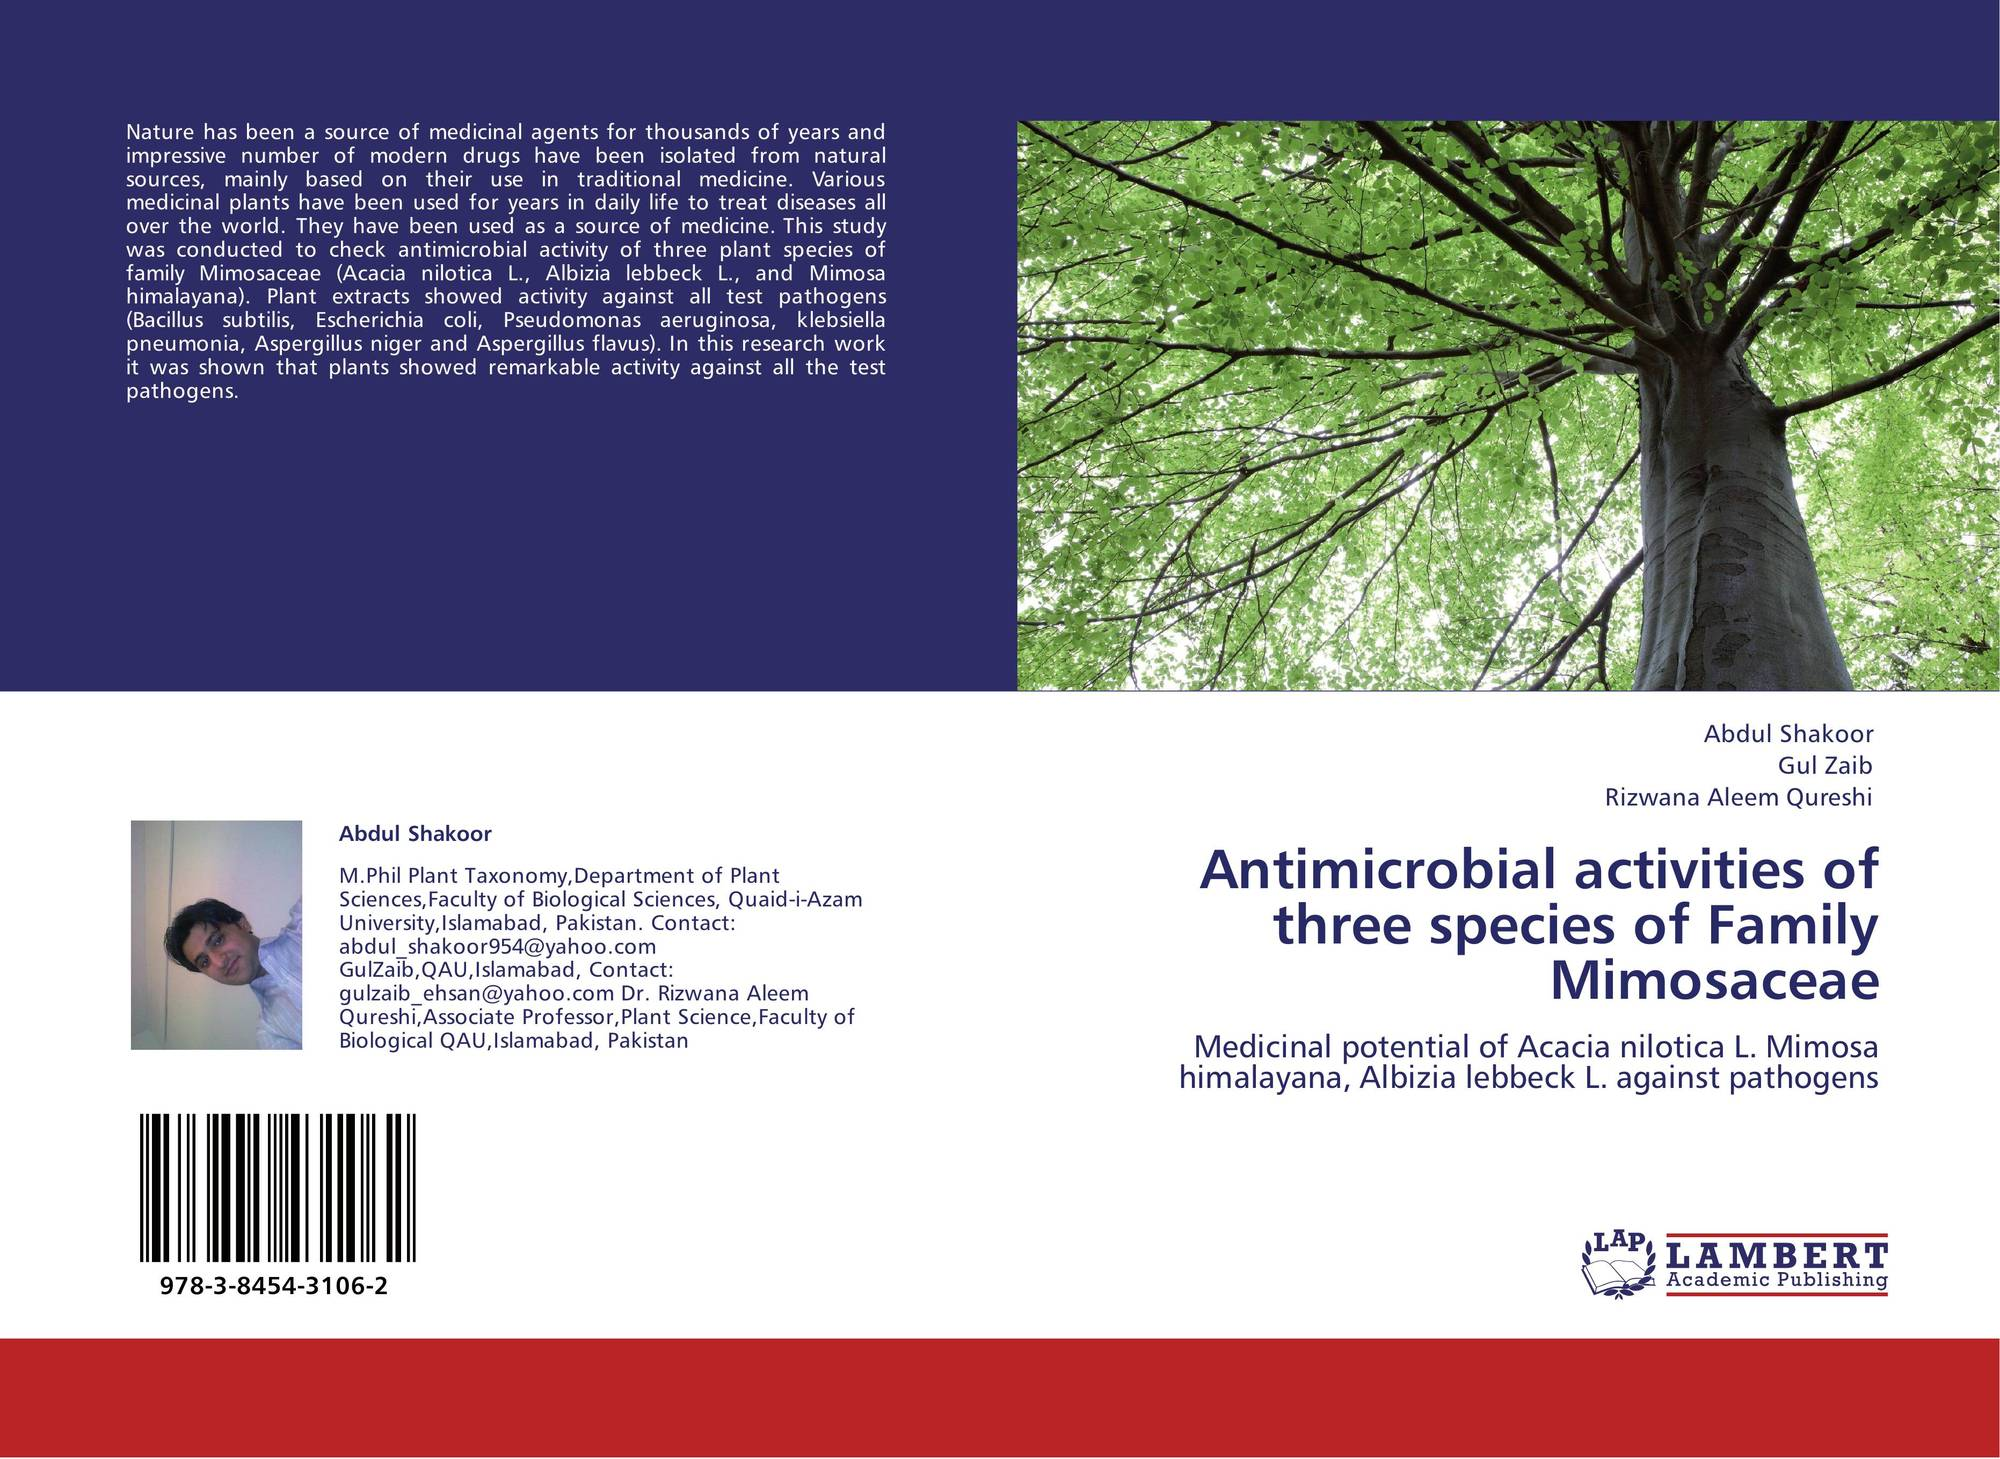 research papers on antimicrobial activity of plants